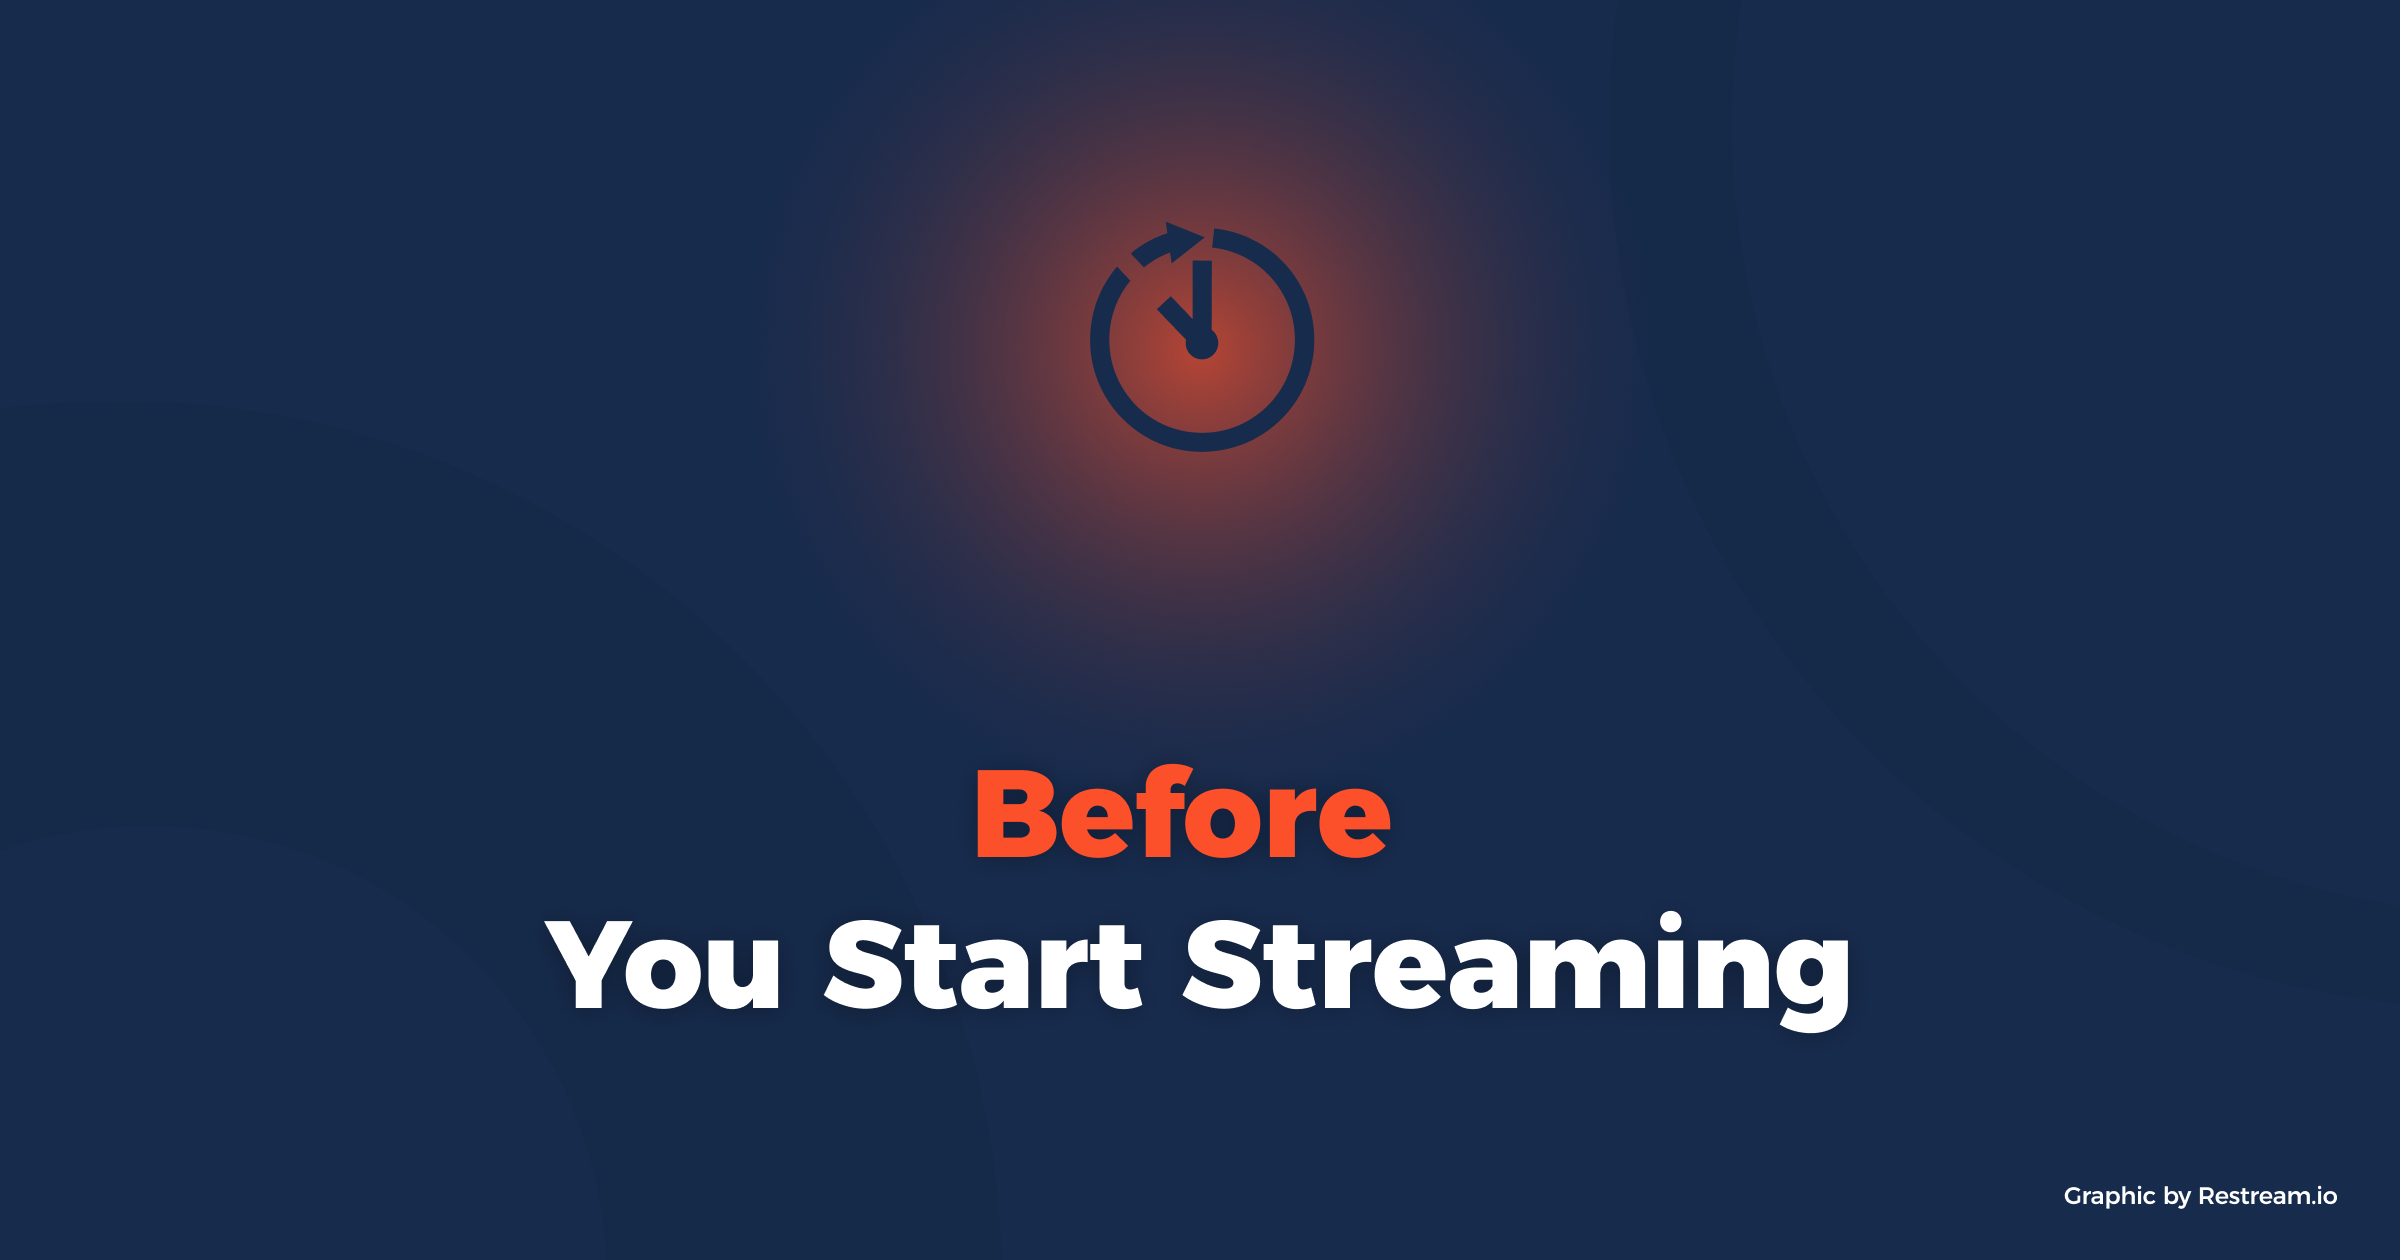 Facebook Live: Before You Start Streaming